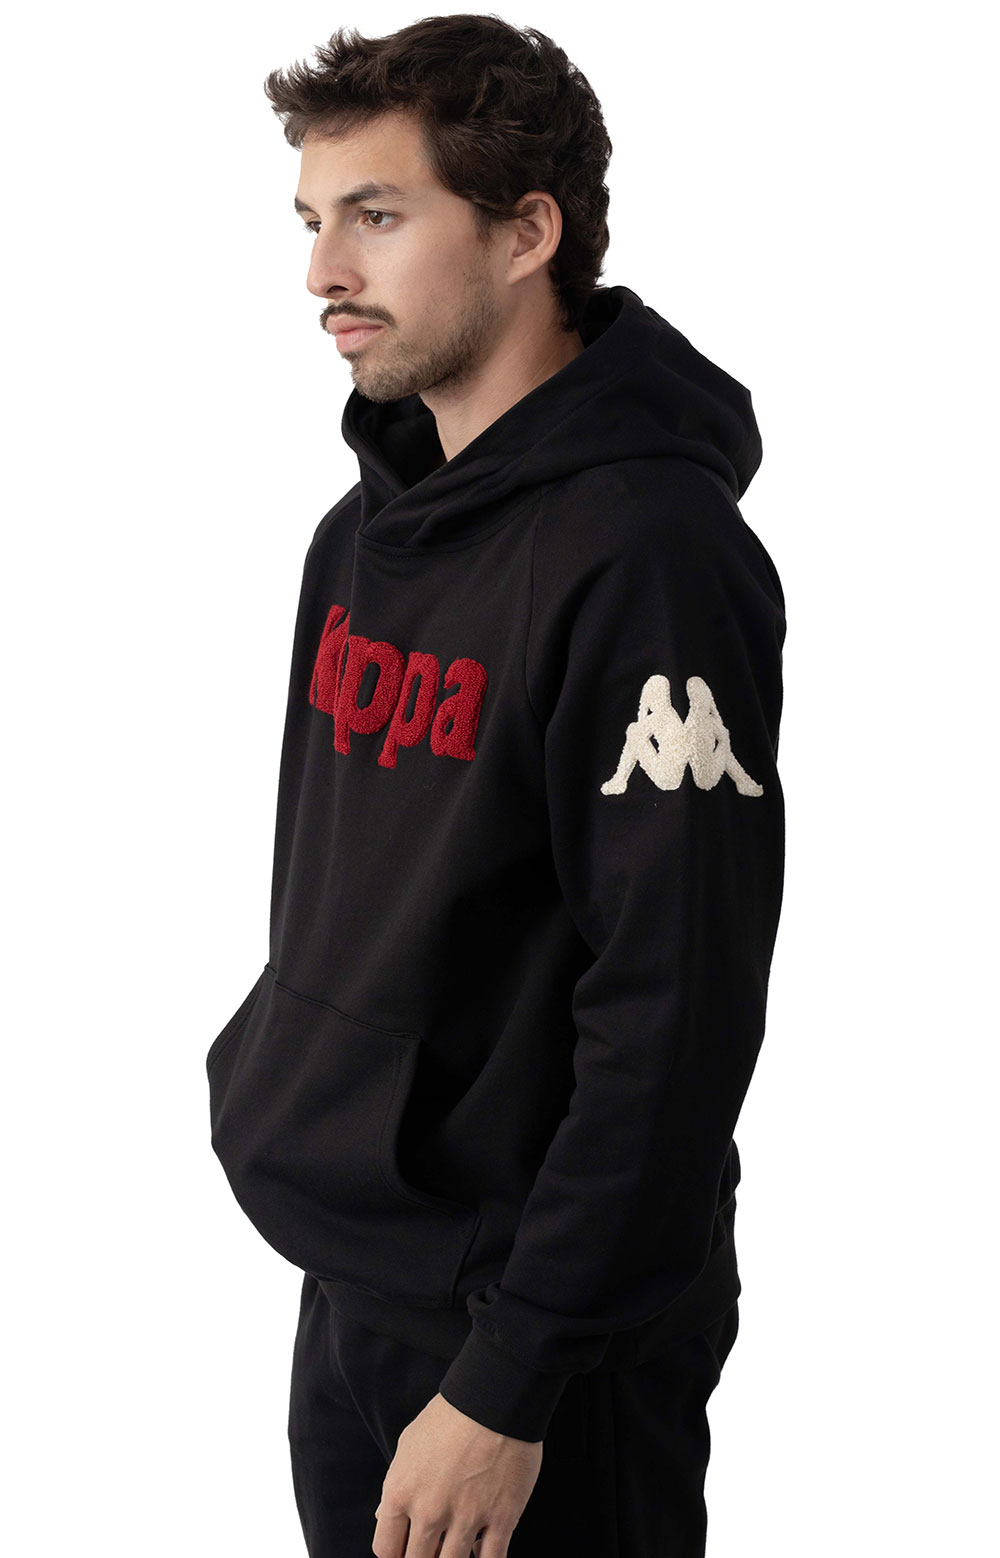 Authentic Katio Pullover Hoodie - Black/Red 2